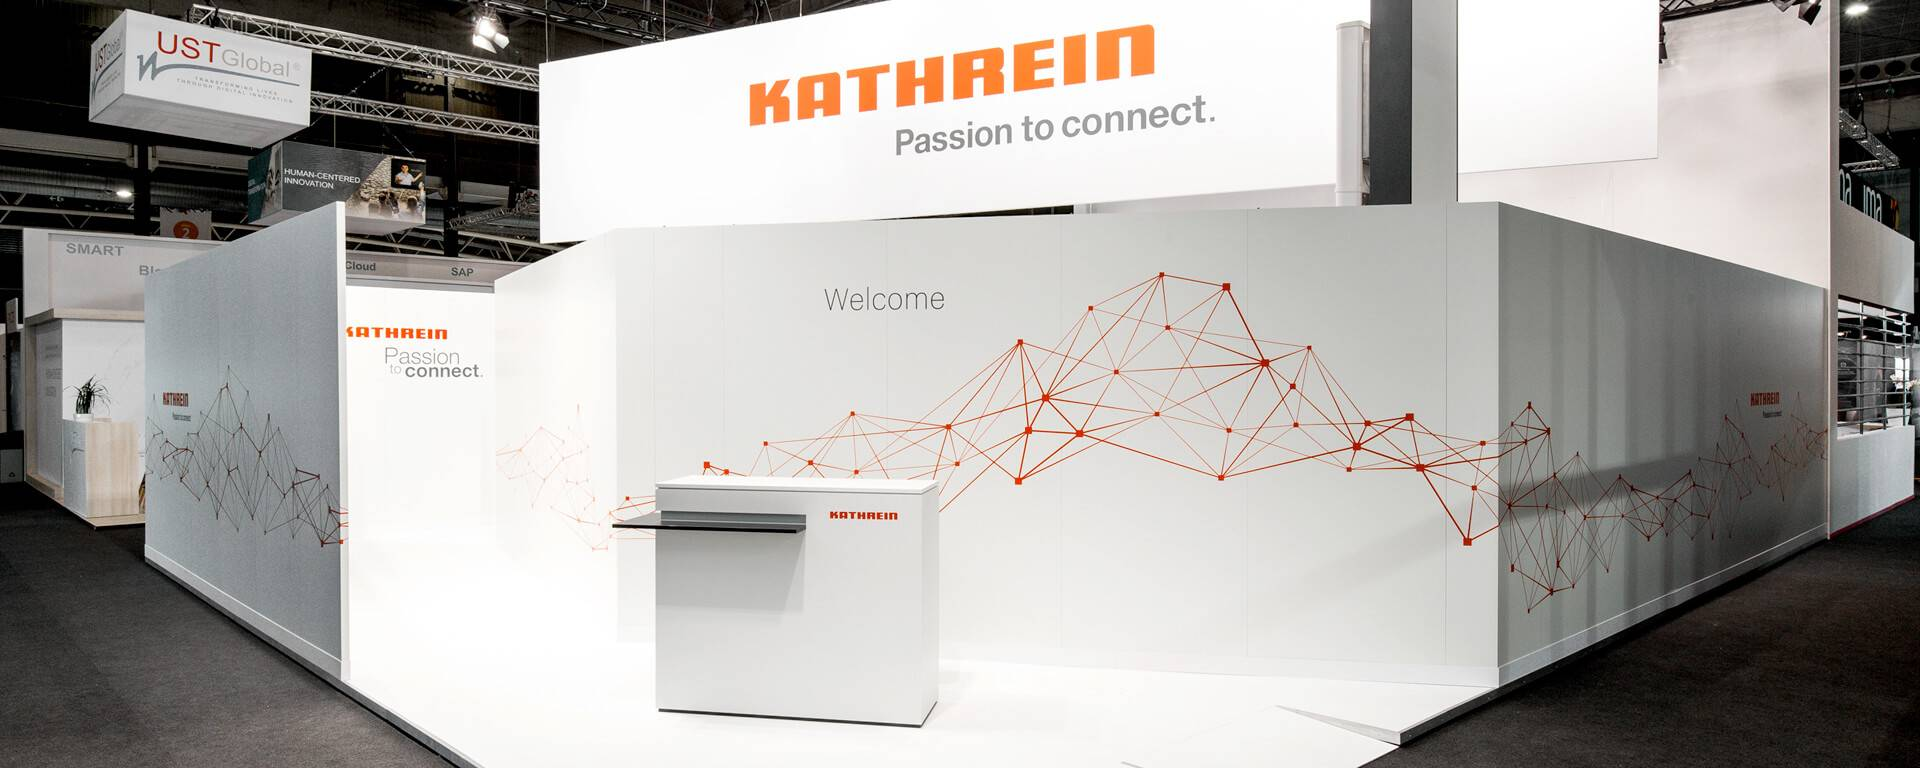 Kathrein auf dem Mobile World Congress 2018